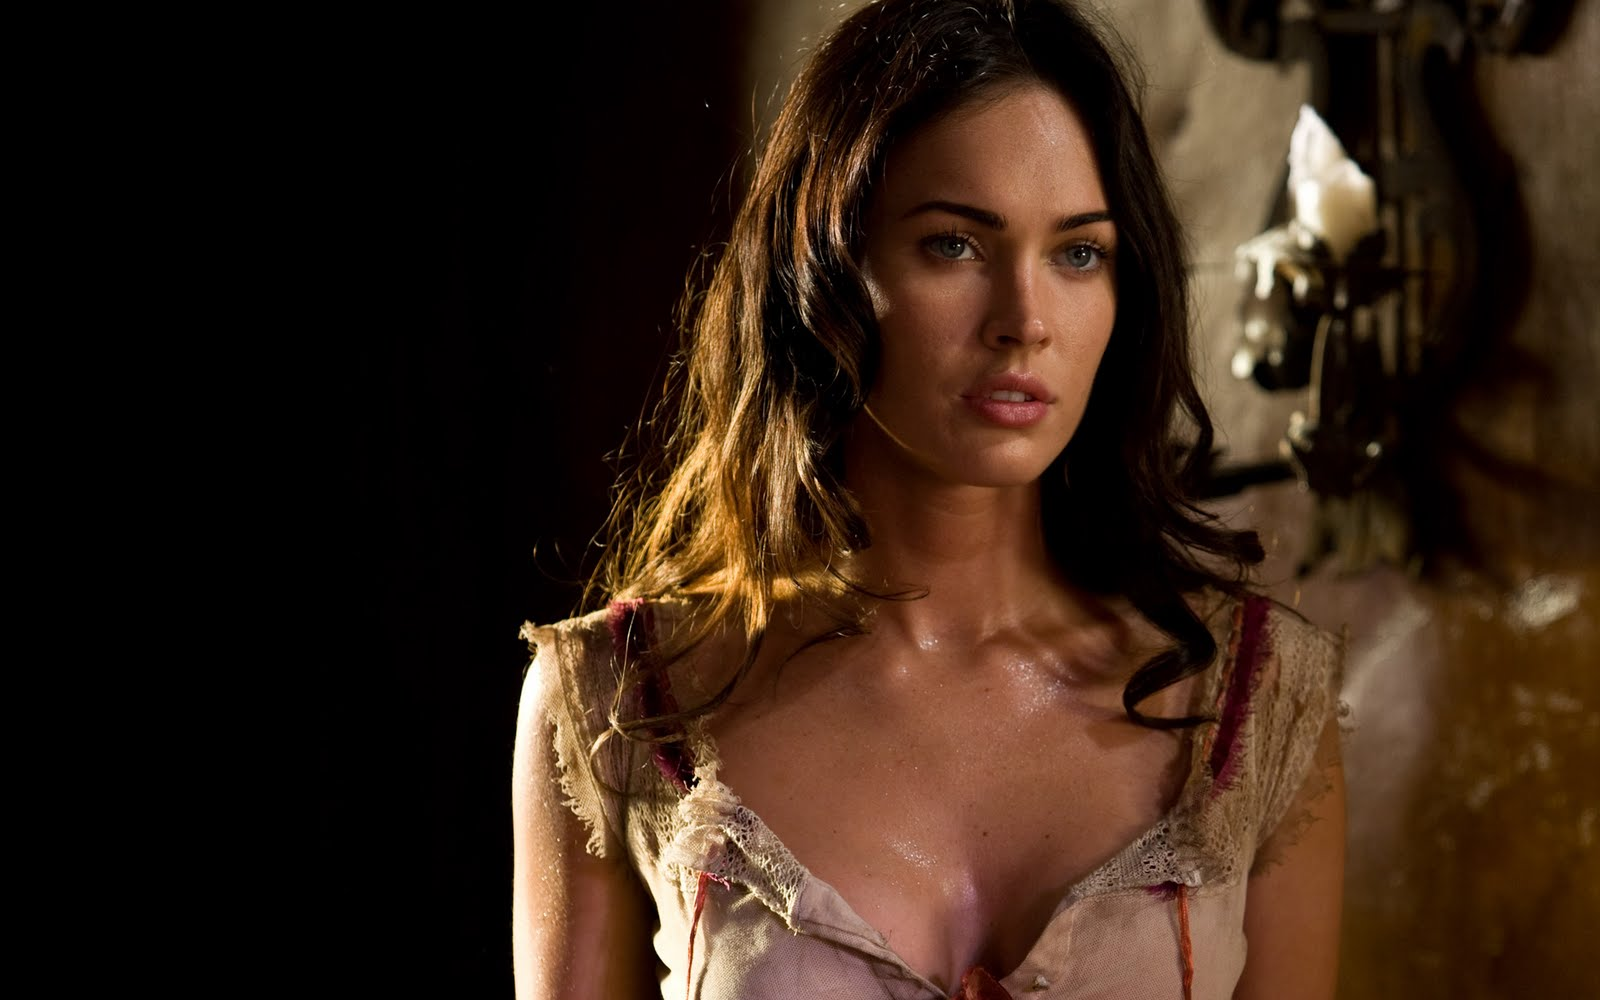 http://3.bp.blogspot.com/-YVS_mL-I5NM/TbBip5puSqI/AAAAAAAAAYM/EEf5fVQJUEA/s1600/megan_fox_in_jonah_hex-wide.jpg